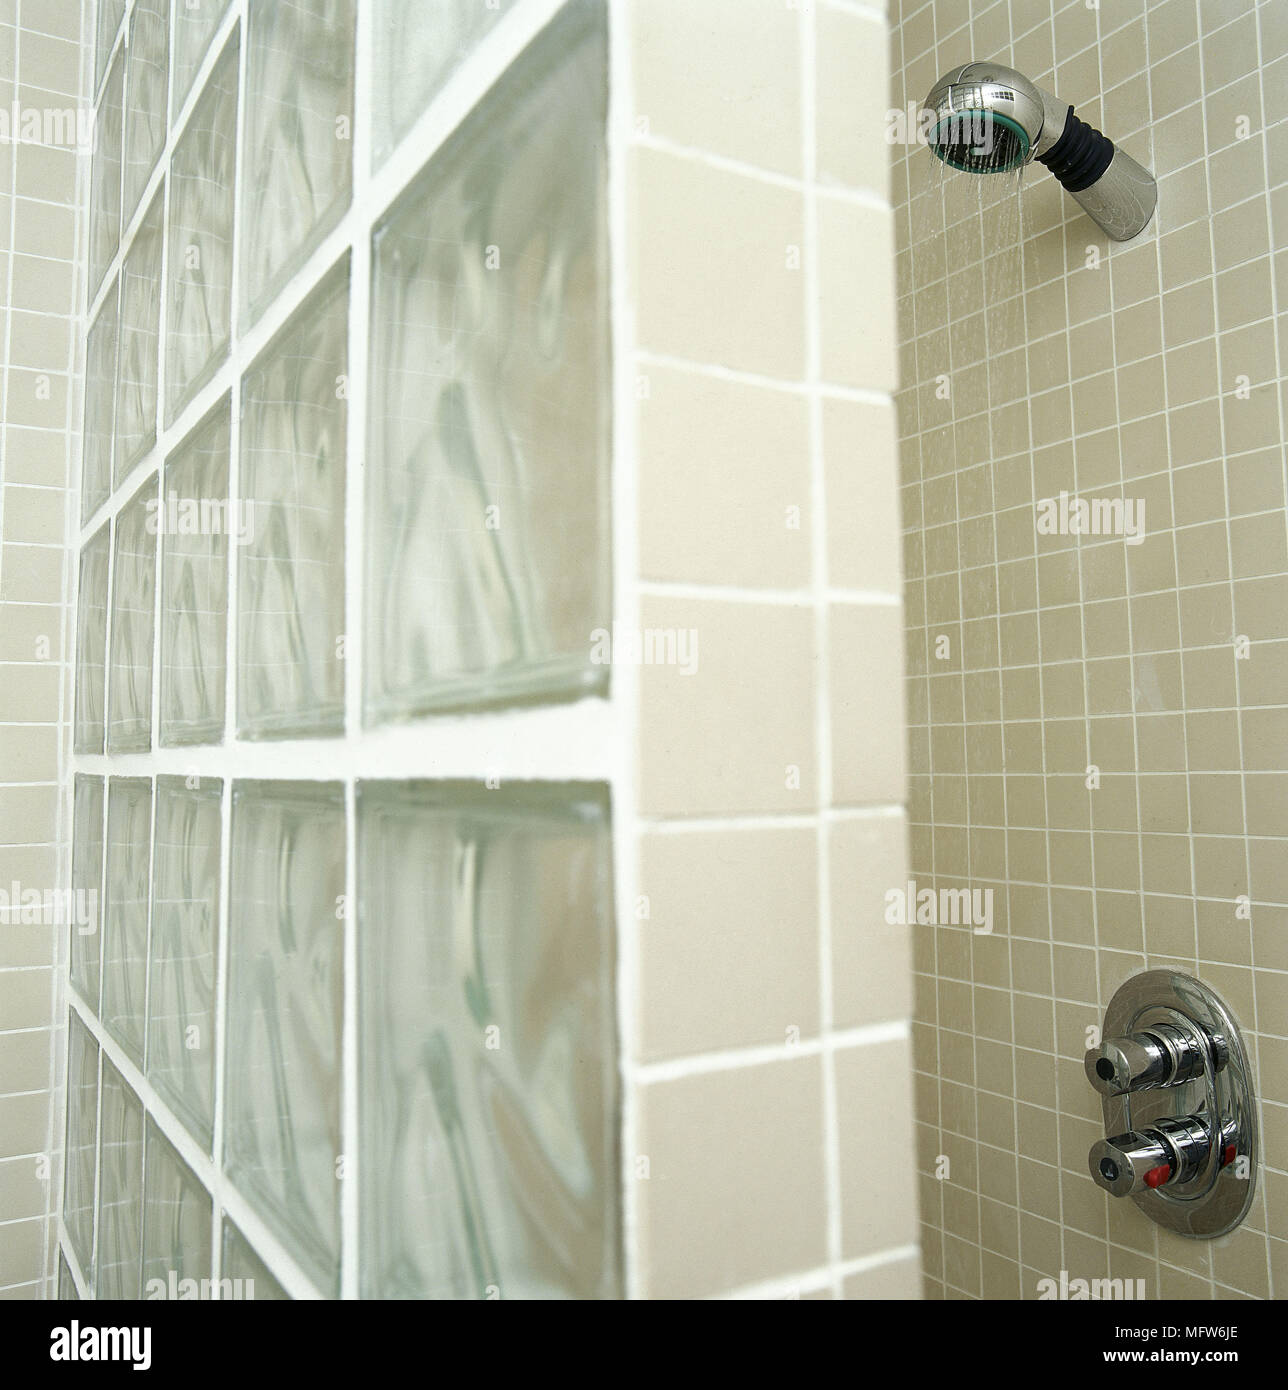 Modern Bathroom Detail Mosaic Tiles Shower Area Glass Block Wall Screen  Interiors Bathrooms Showers Tiling Tiled